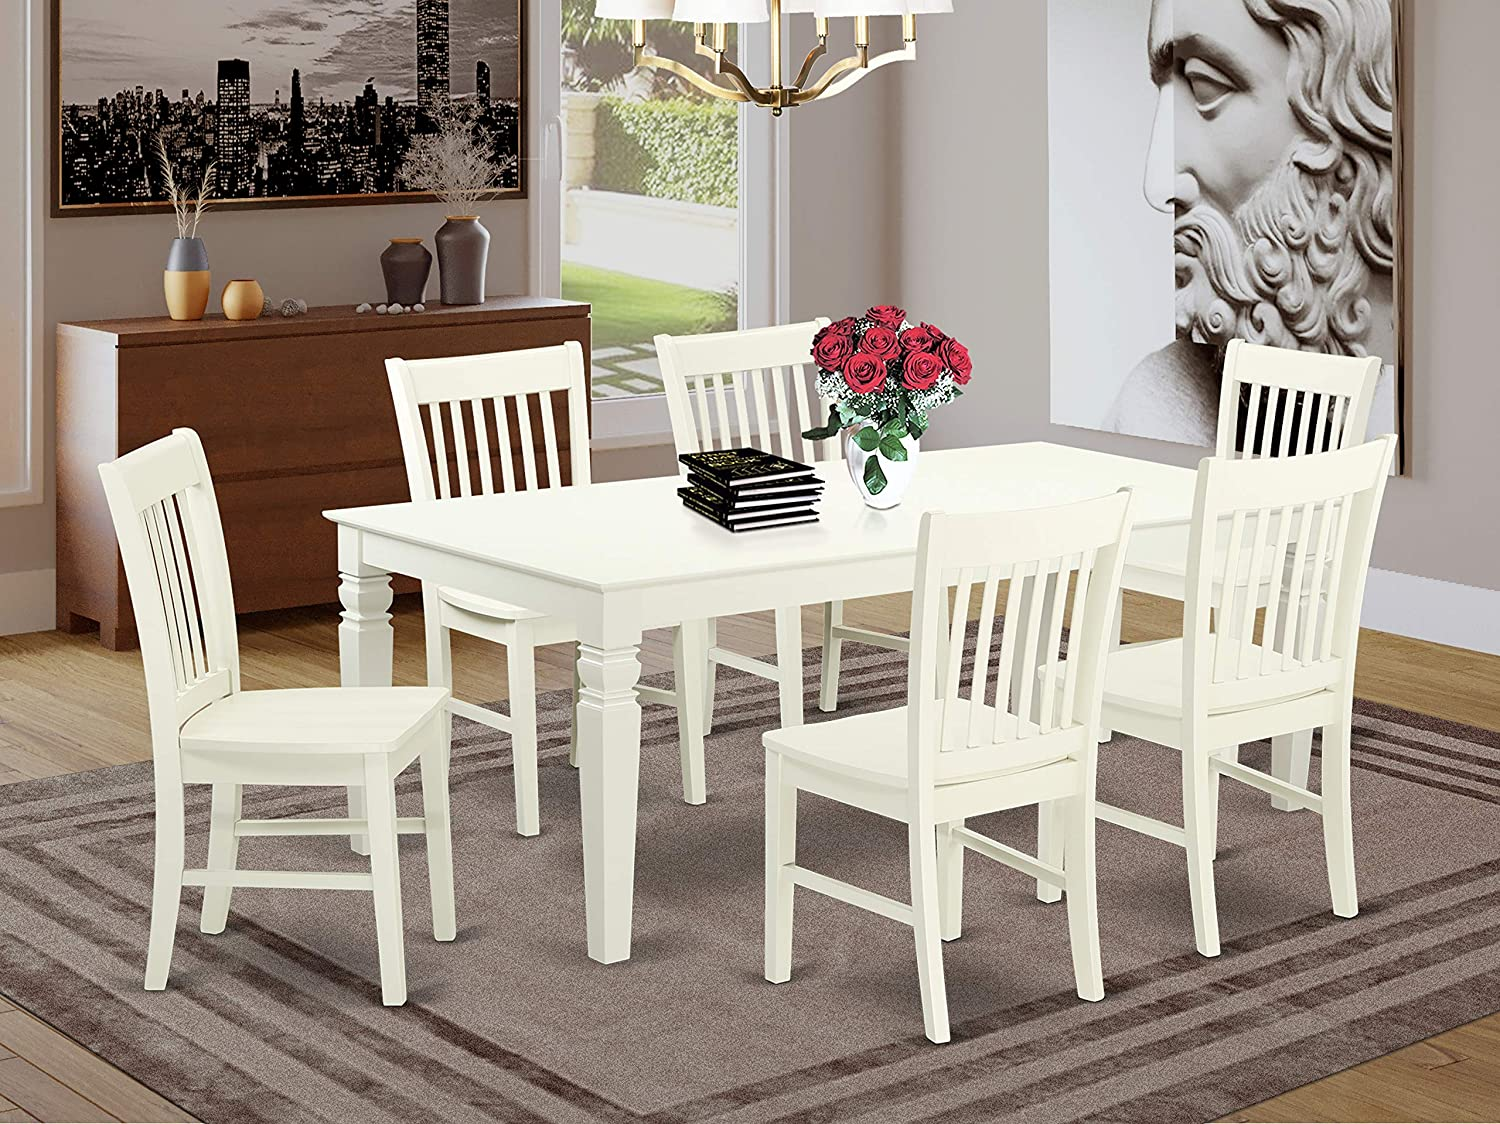 7 Pc Dining Set With One Logan Dinning Table And Six Wood Kitchen Chairs Finished In A Rich Linen White Color.